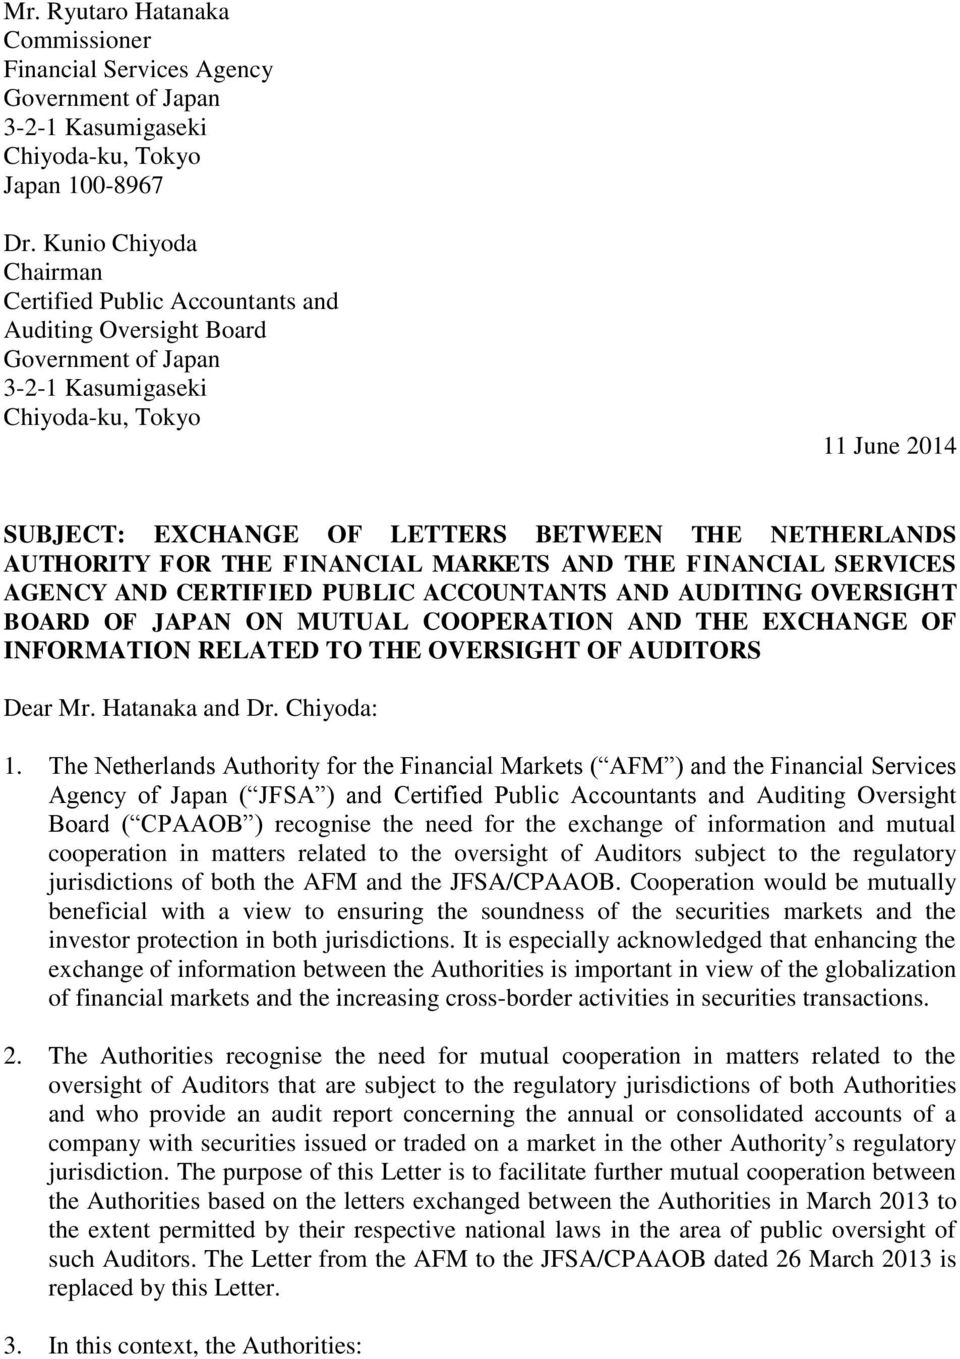 NETHERLANDS AUTHORITY FOR THE FINANCIAL MARKETS AND THE FINANCIAL SERVICES AGENCY AND CERTIFIED PUBLIC ACCOUNTANTS AND AUDITING OVERSIGHT BOARD OF JAPAN ON MUTUAL COOPERATION AND THE EXCHANGE OF